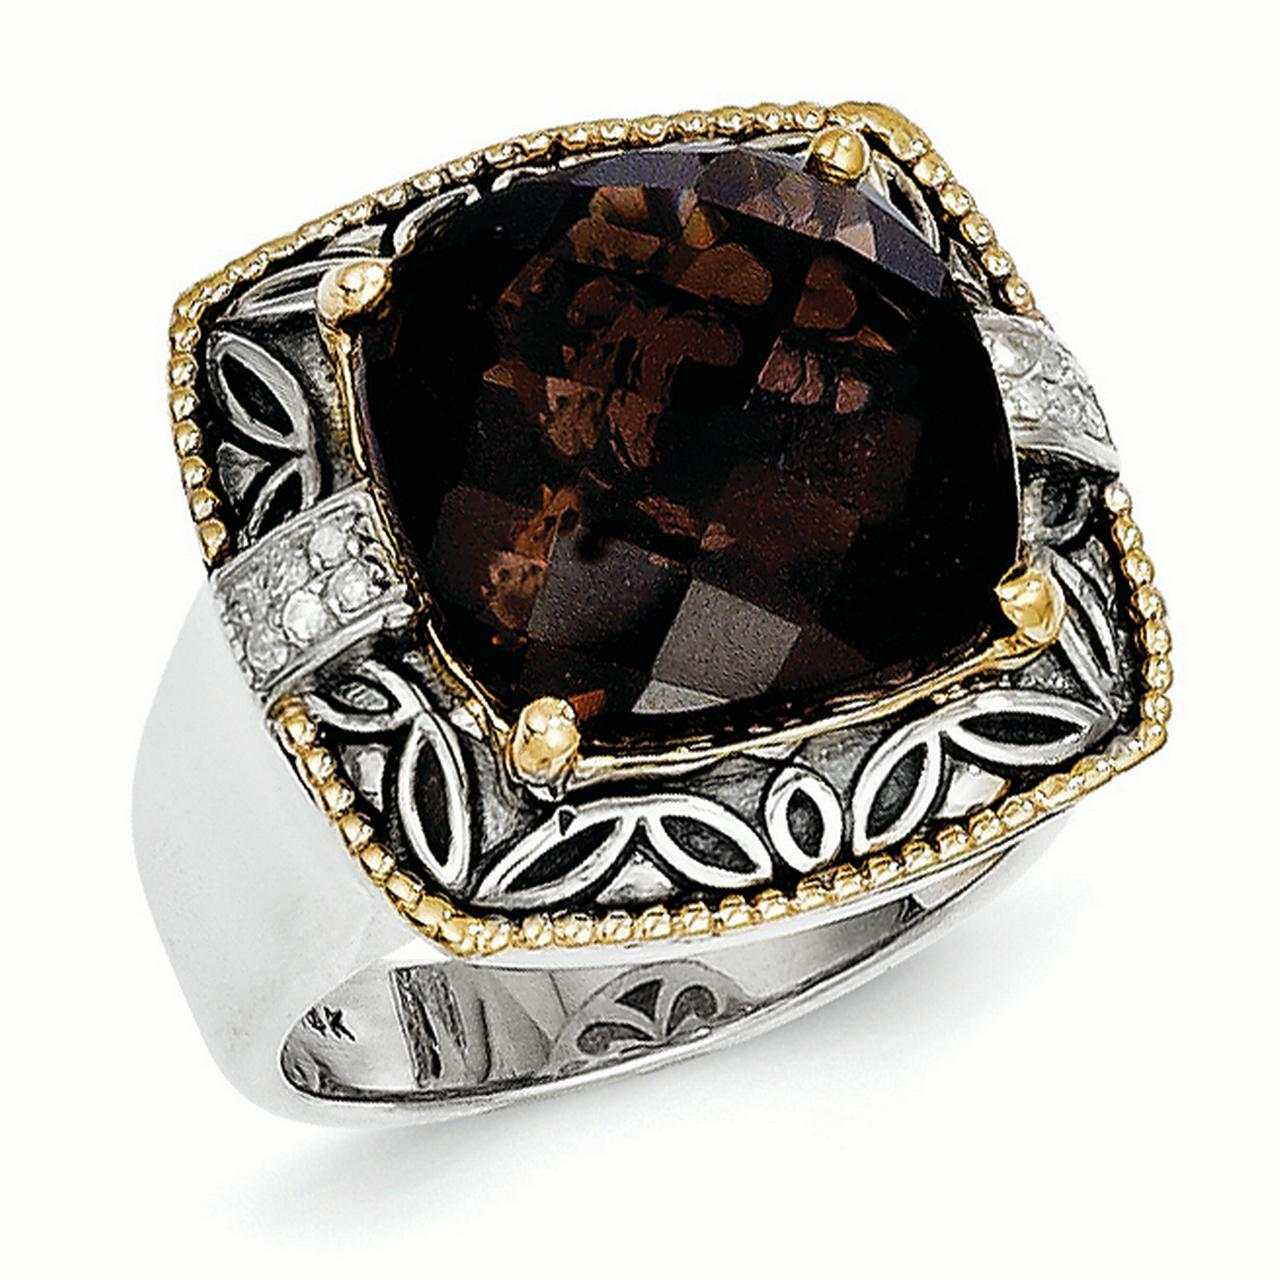 Sterling Silver Two Tone Silver And Gold Plated Sterling Silver w/Smoky Quartz & Diamond Ring - image 3 de 3